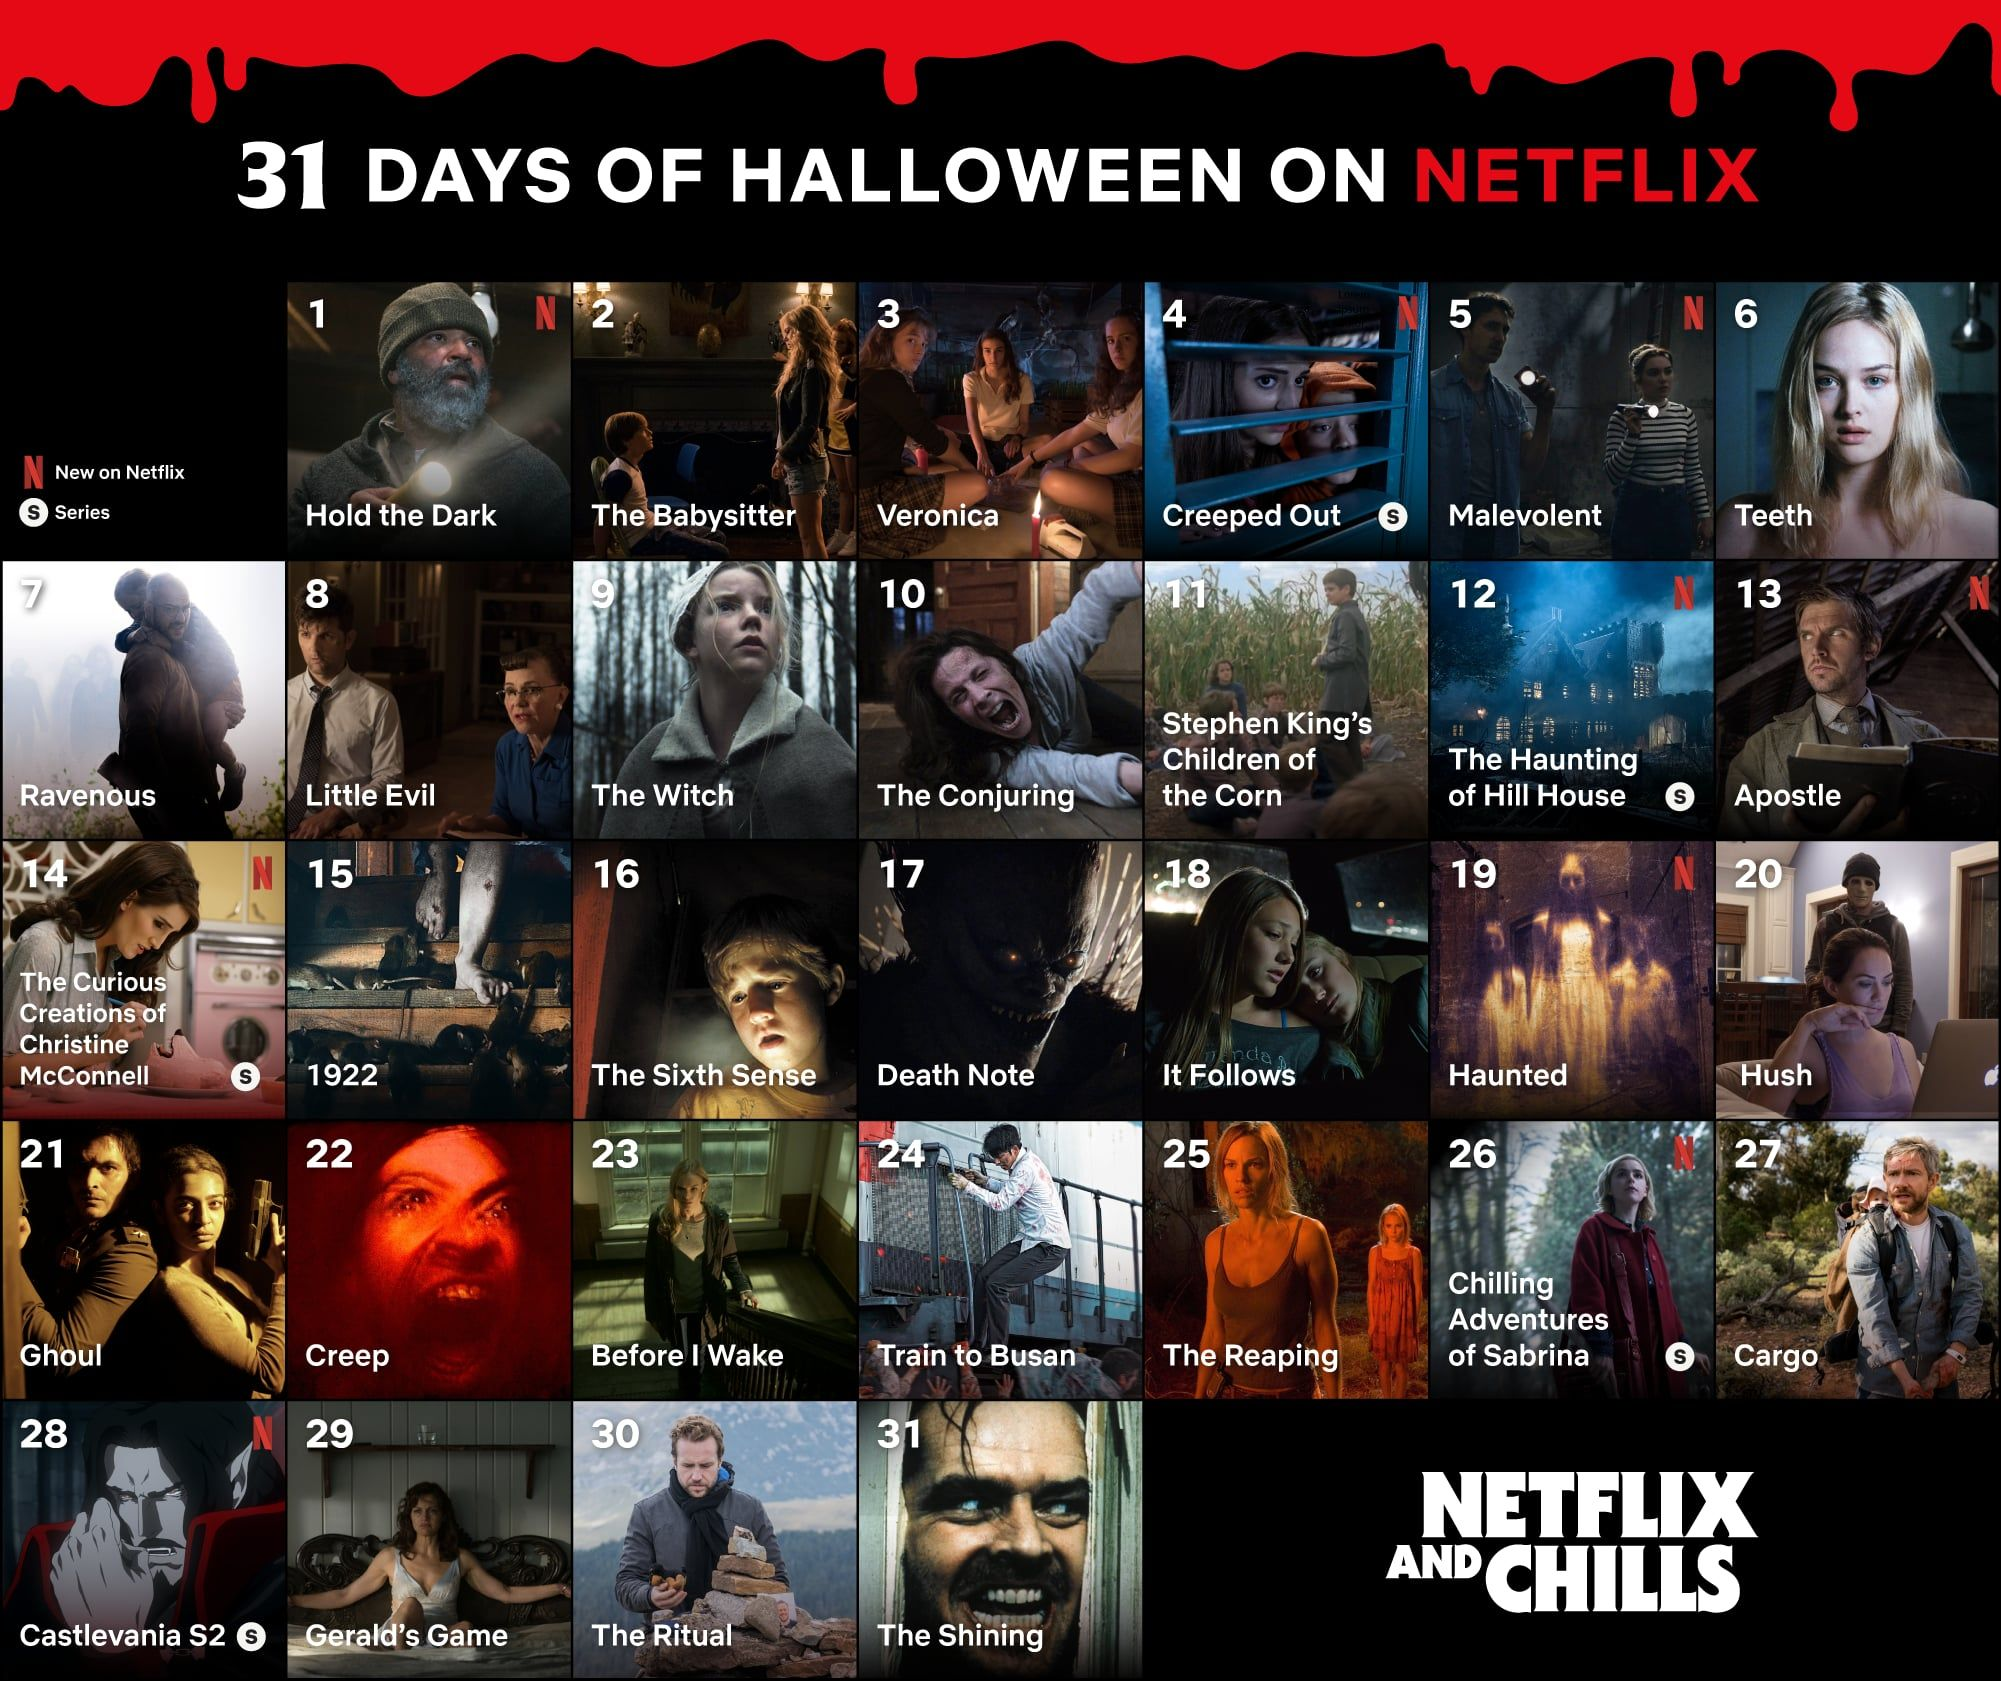 31 Spooky Movies and TV Shows You Can Stream on Netflix